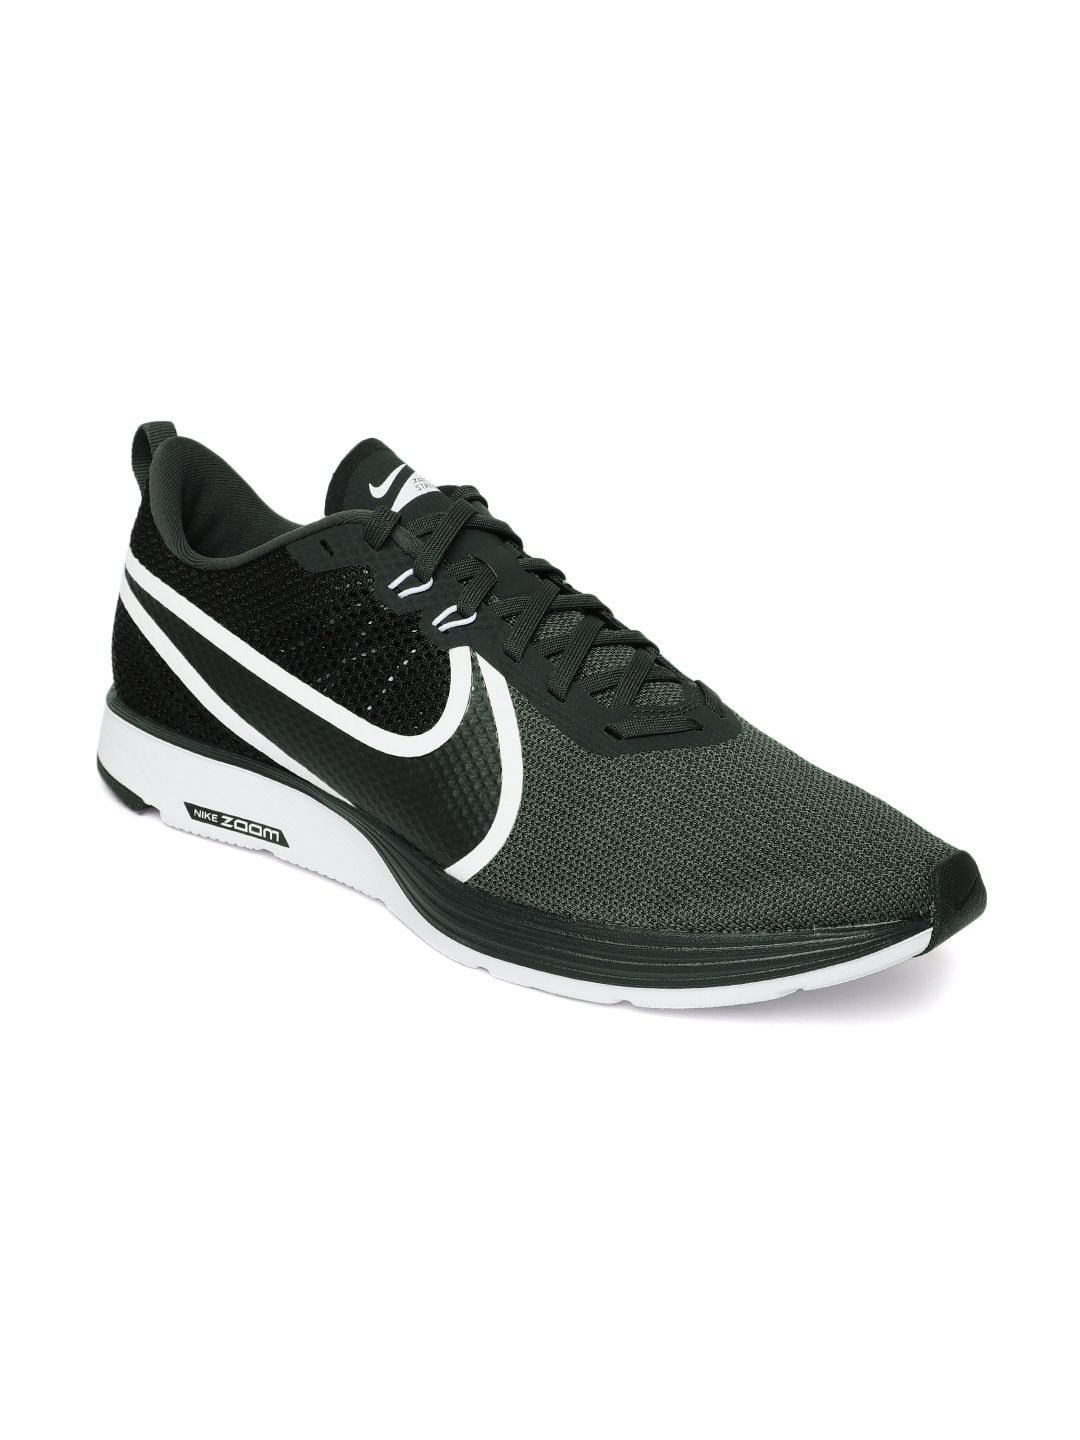 e0f828bf0d7a Nike Football Shoes - Buy Nike Football Shoes Online At Myntra